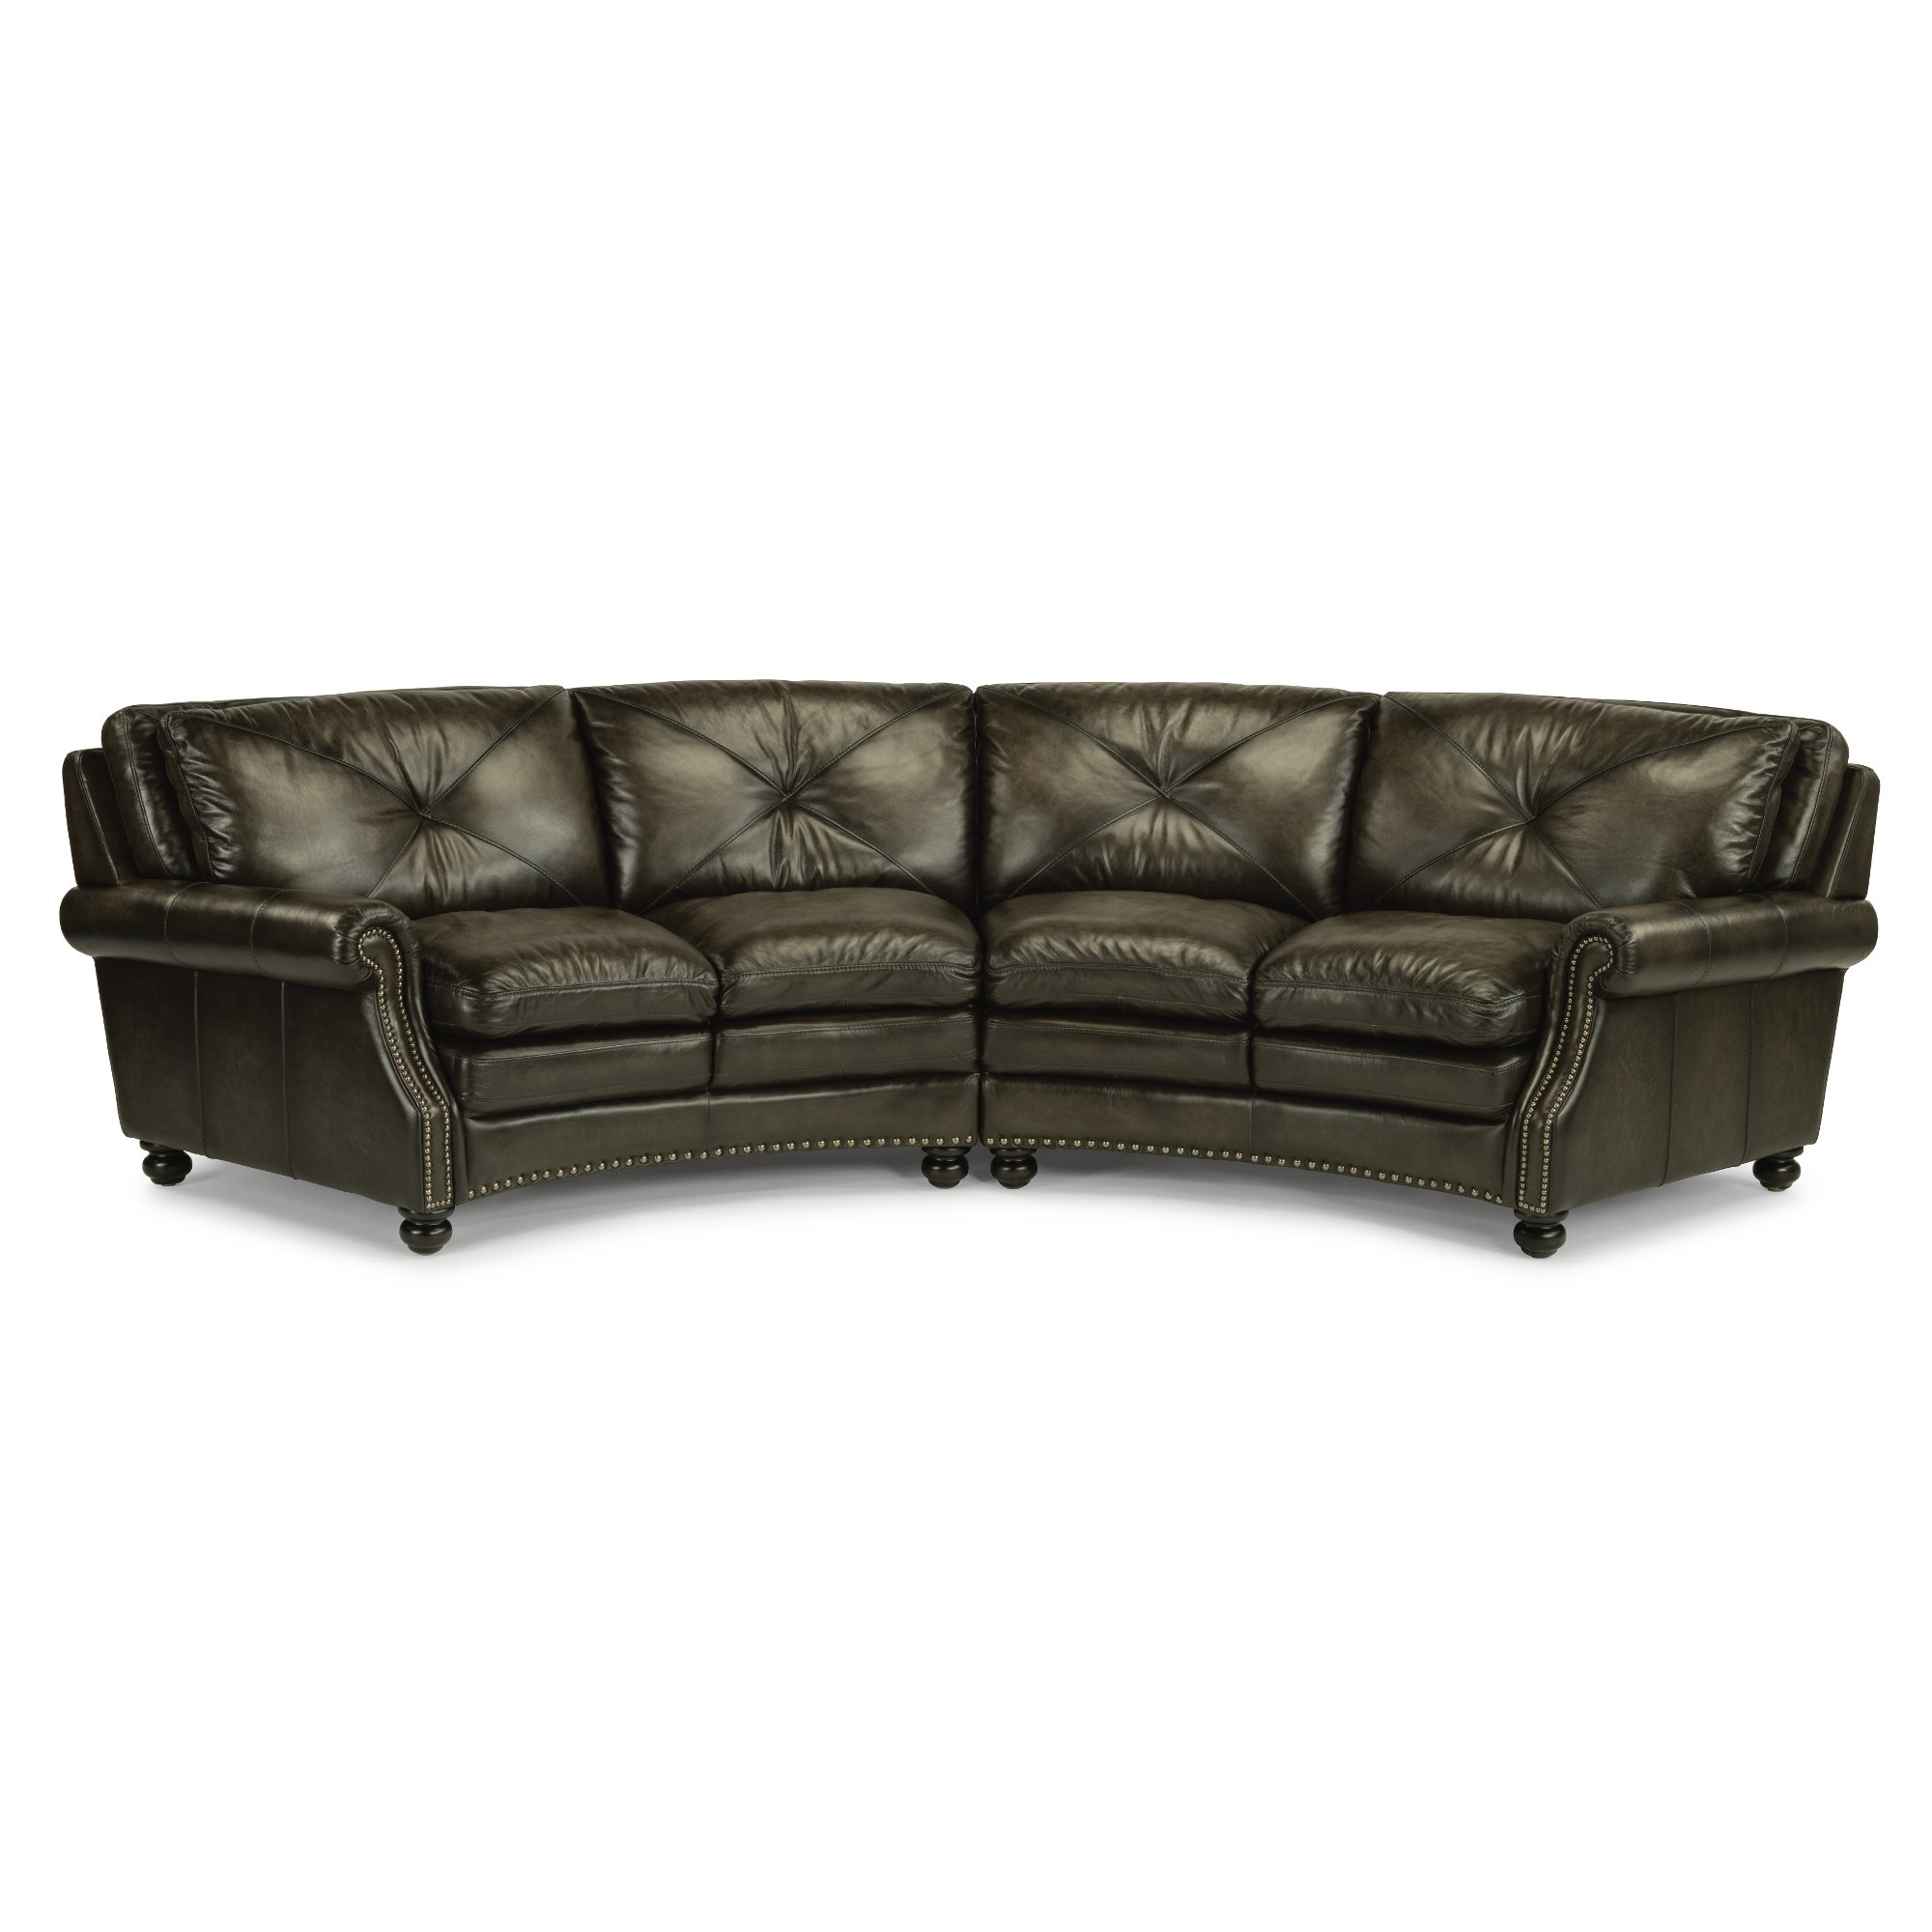 Classic Dark Gray Leather 2 Piece Sectional Sofa - Suffolk